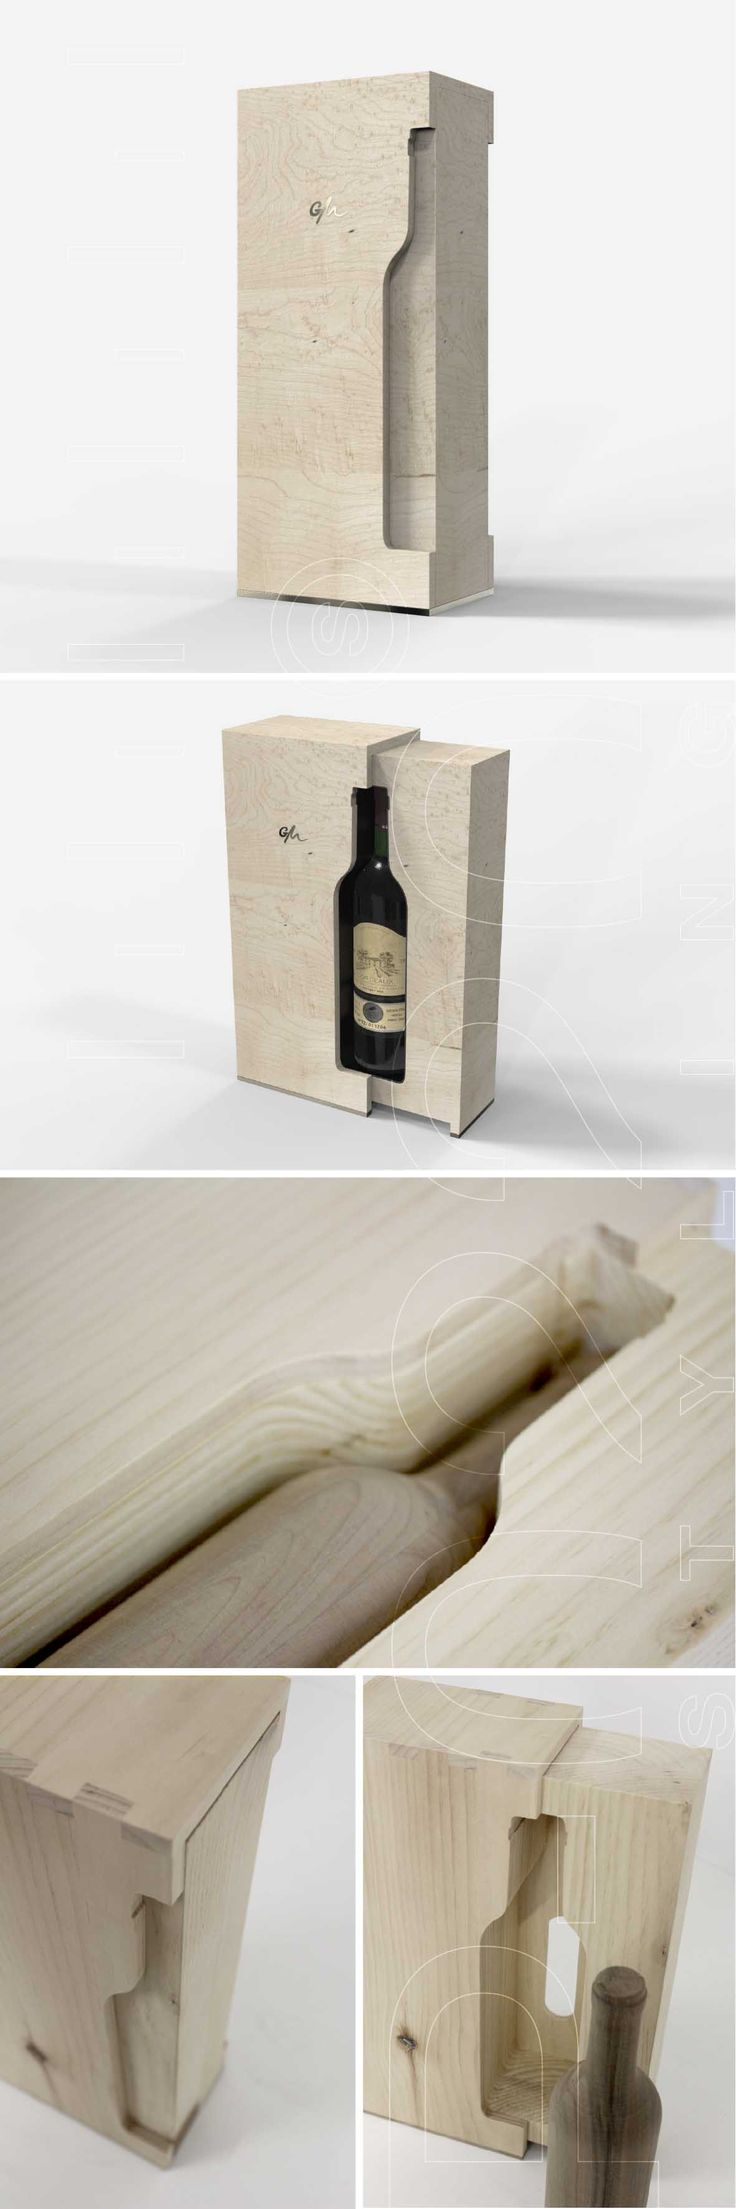 Écrin Bouteille de Vin / Wine Bottle Box designed by Pozzo di Borgo Styling SA.